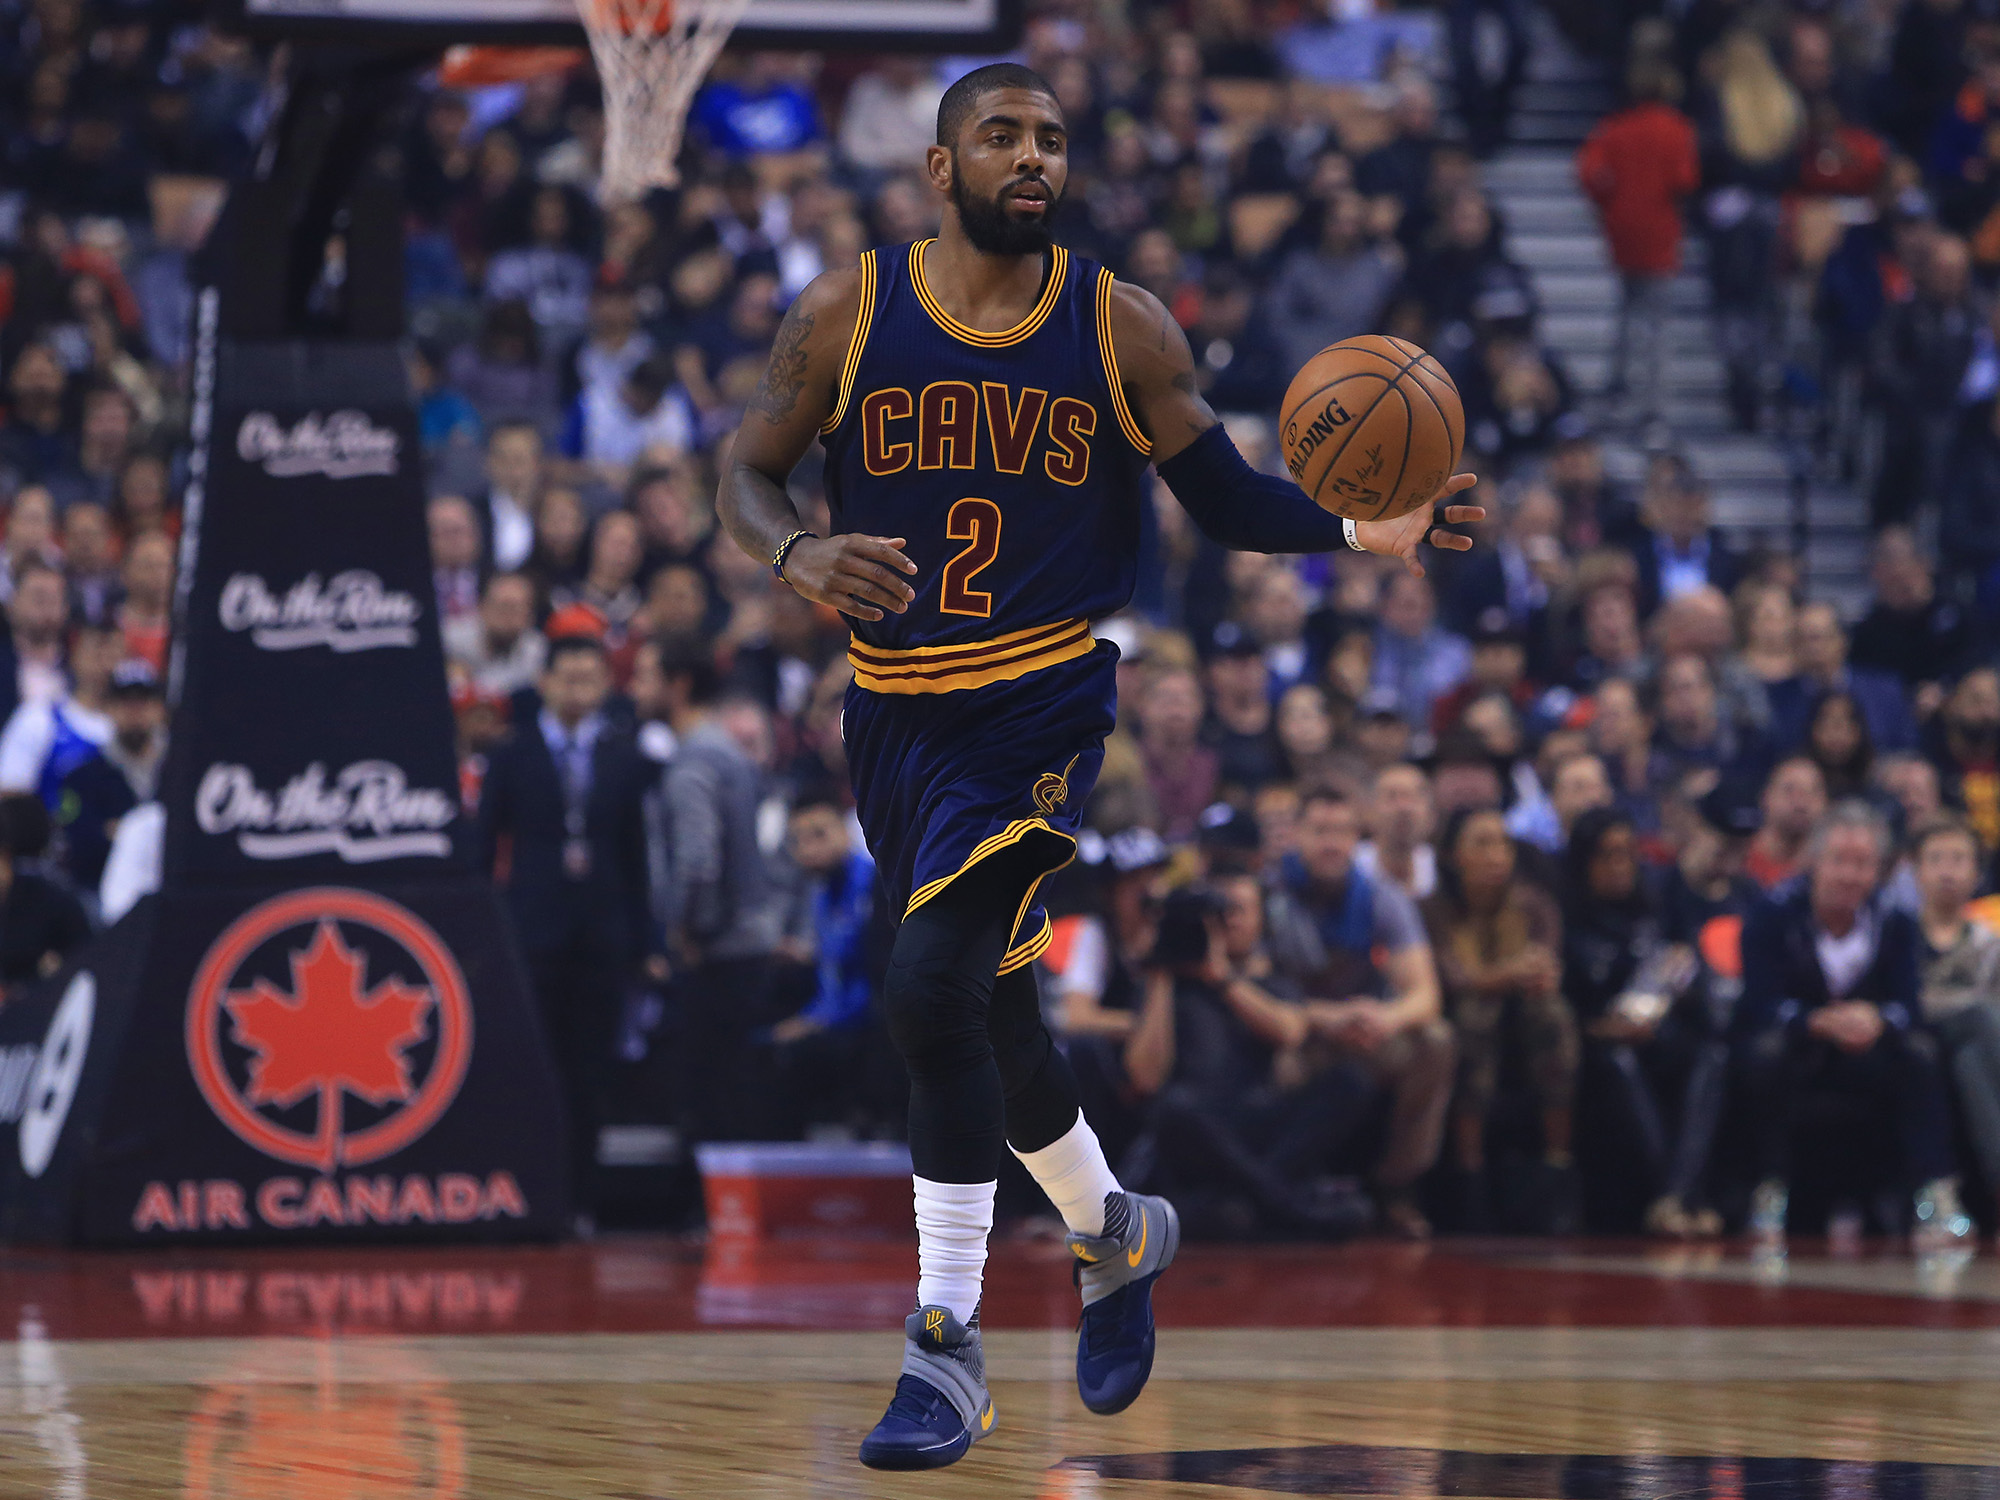 'Golden State Warriors at Cleveland Cavaliers - 12/25/16 NBA Pick, Odds, and Prediction'